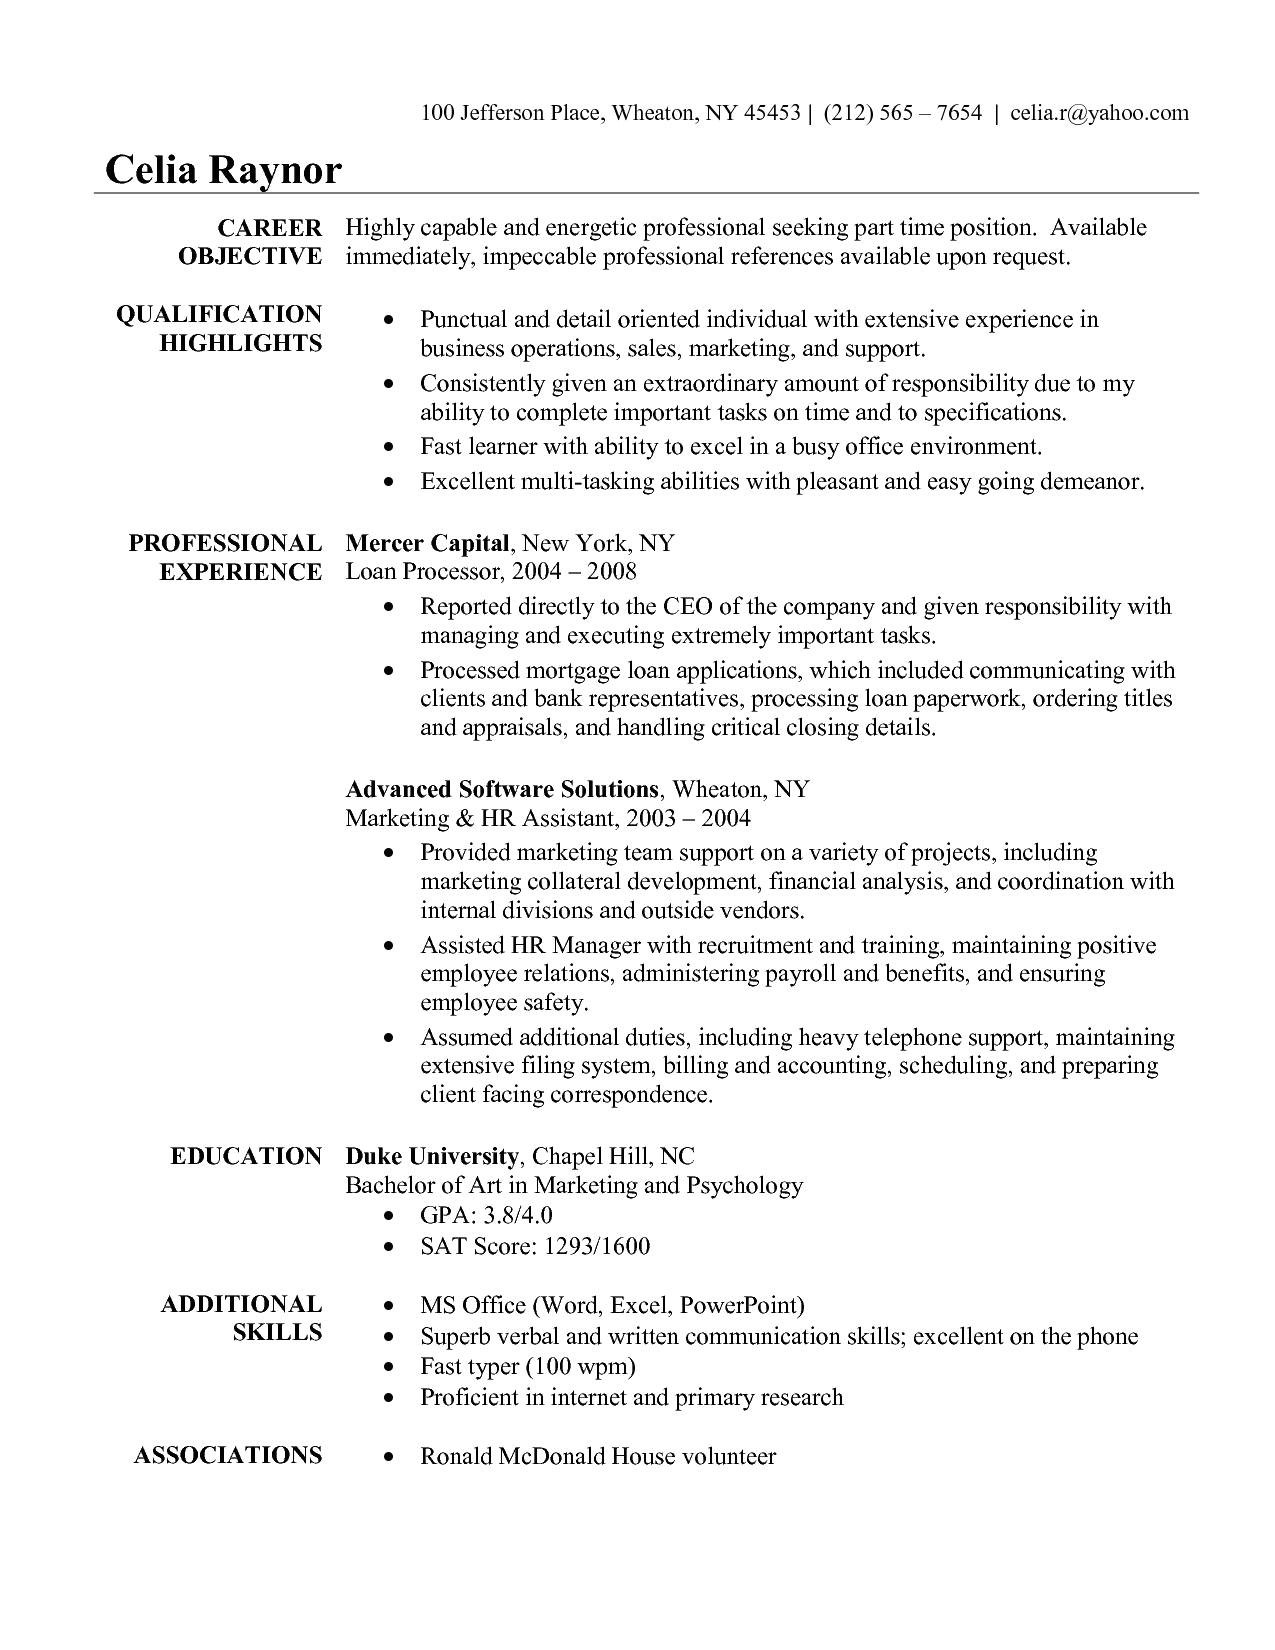 sample resume for cabin crew with no experience new cover letter executive secretary resume sample executive secretary